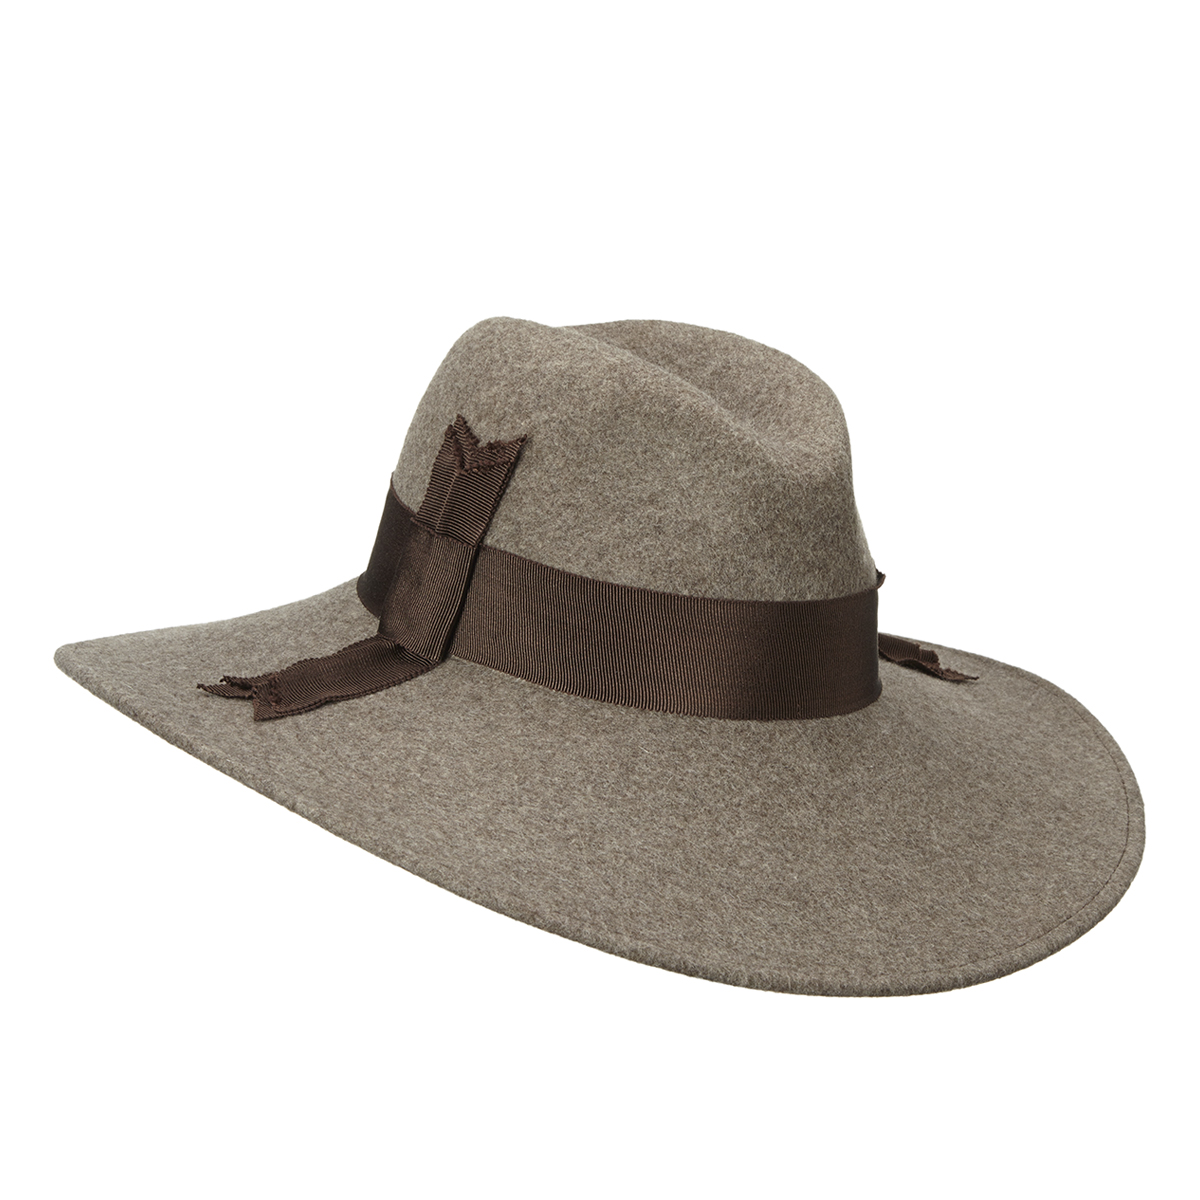 Arnotts Peter O'Brien Oversized Felt Hat E130 (2)